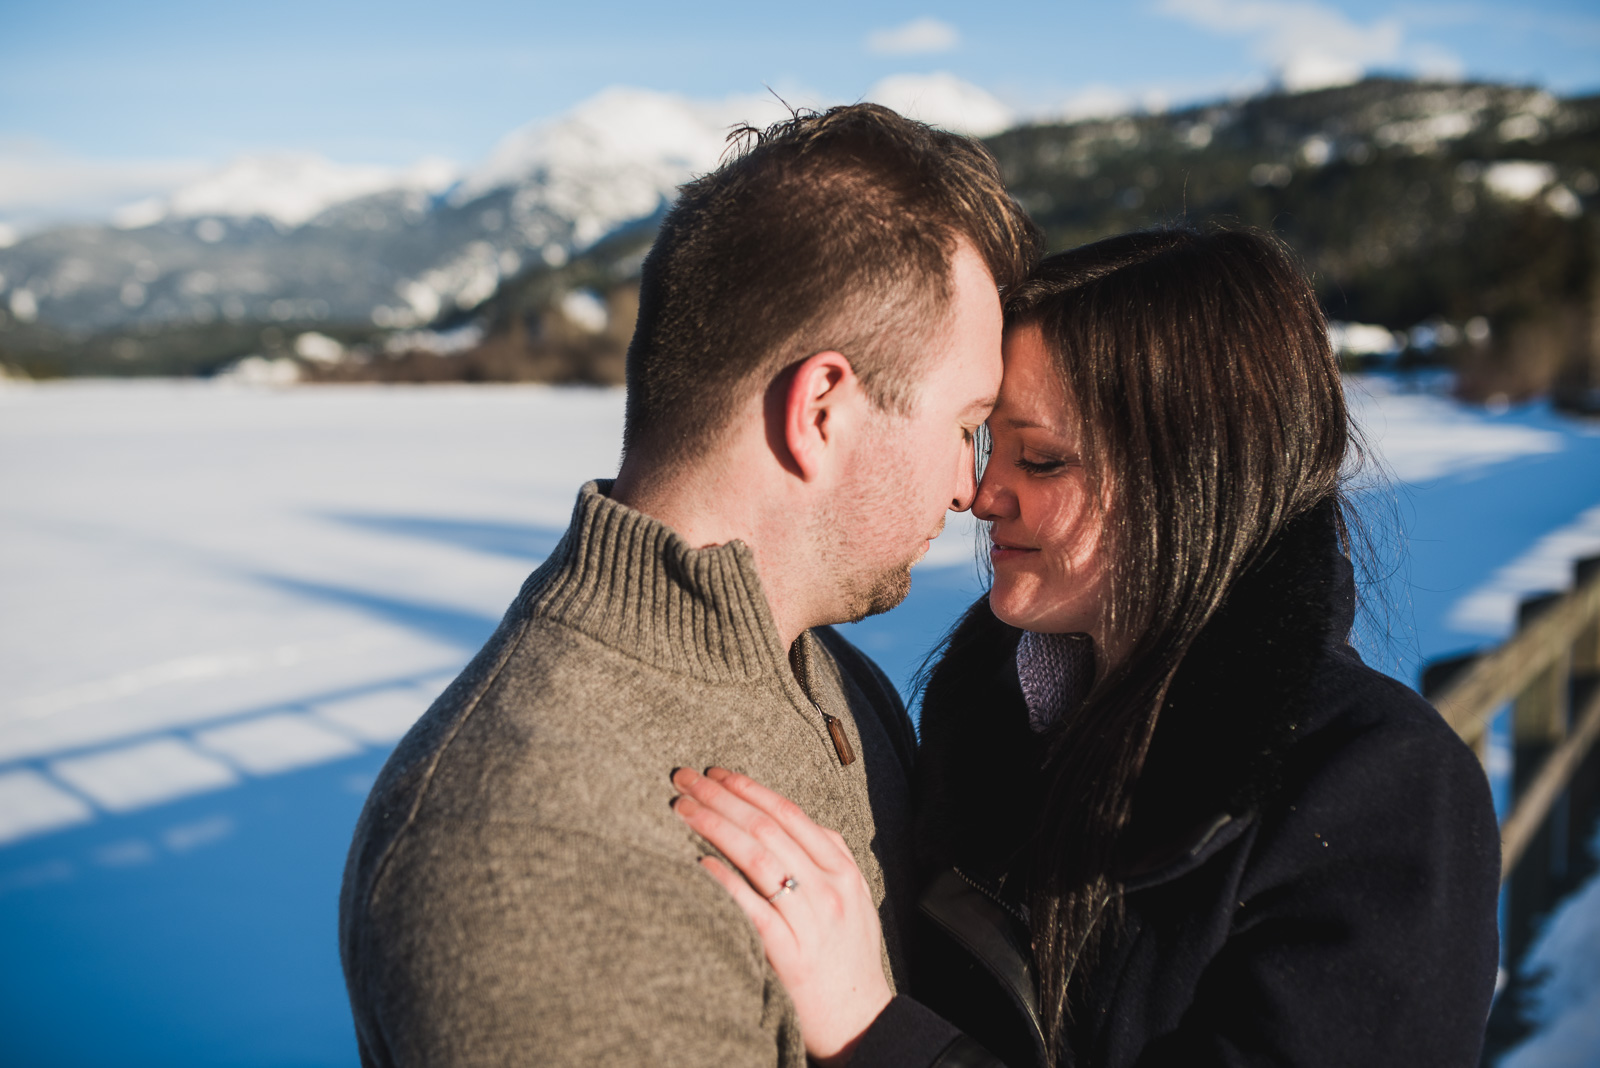 winter-whistler-engagement-whistler-wedding-photographer-green-lake-engagement-7.jpg